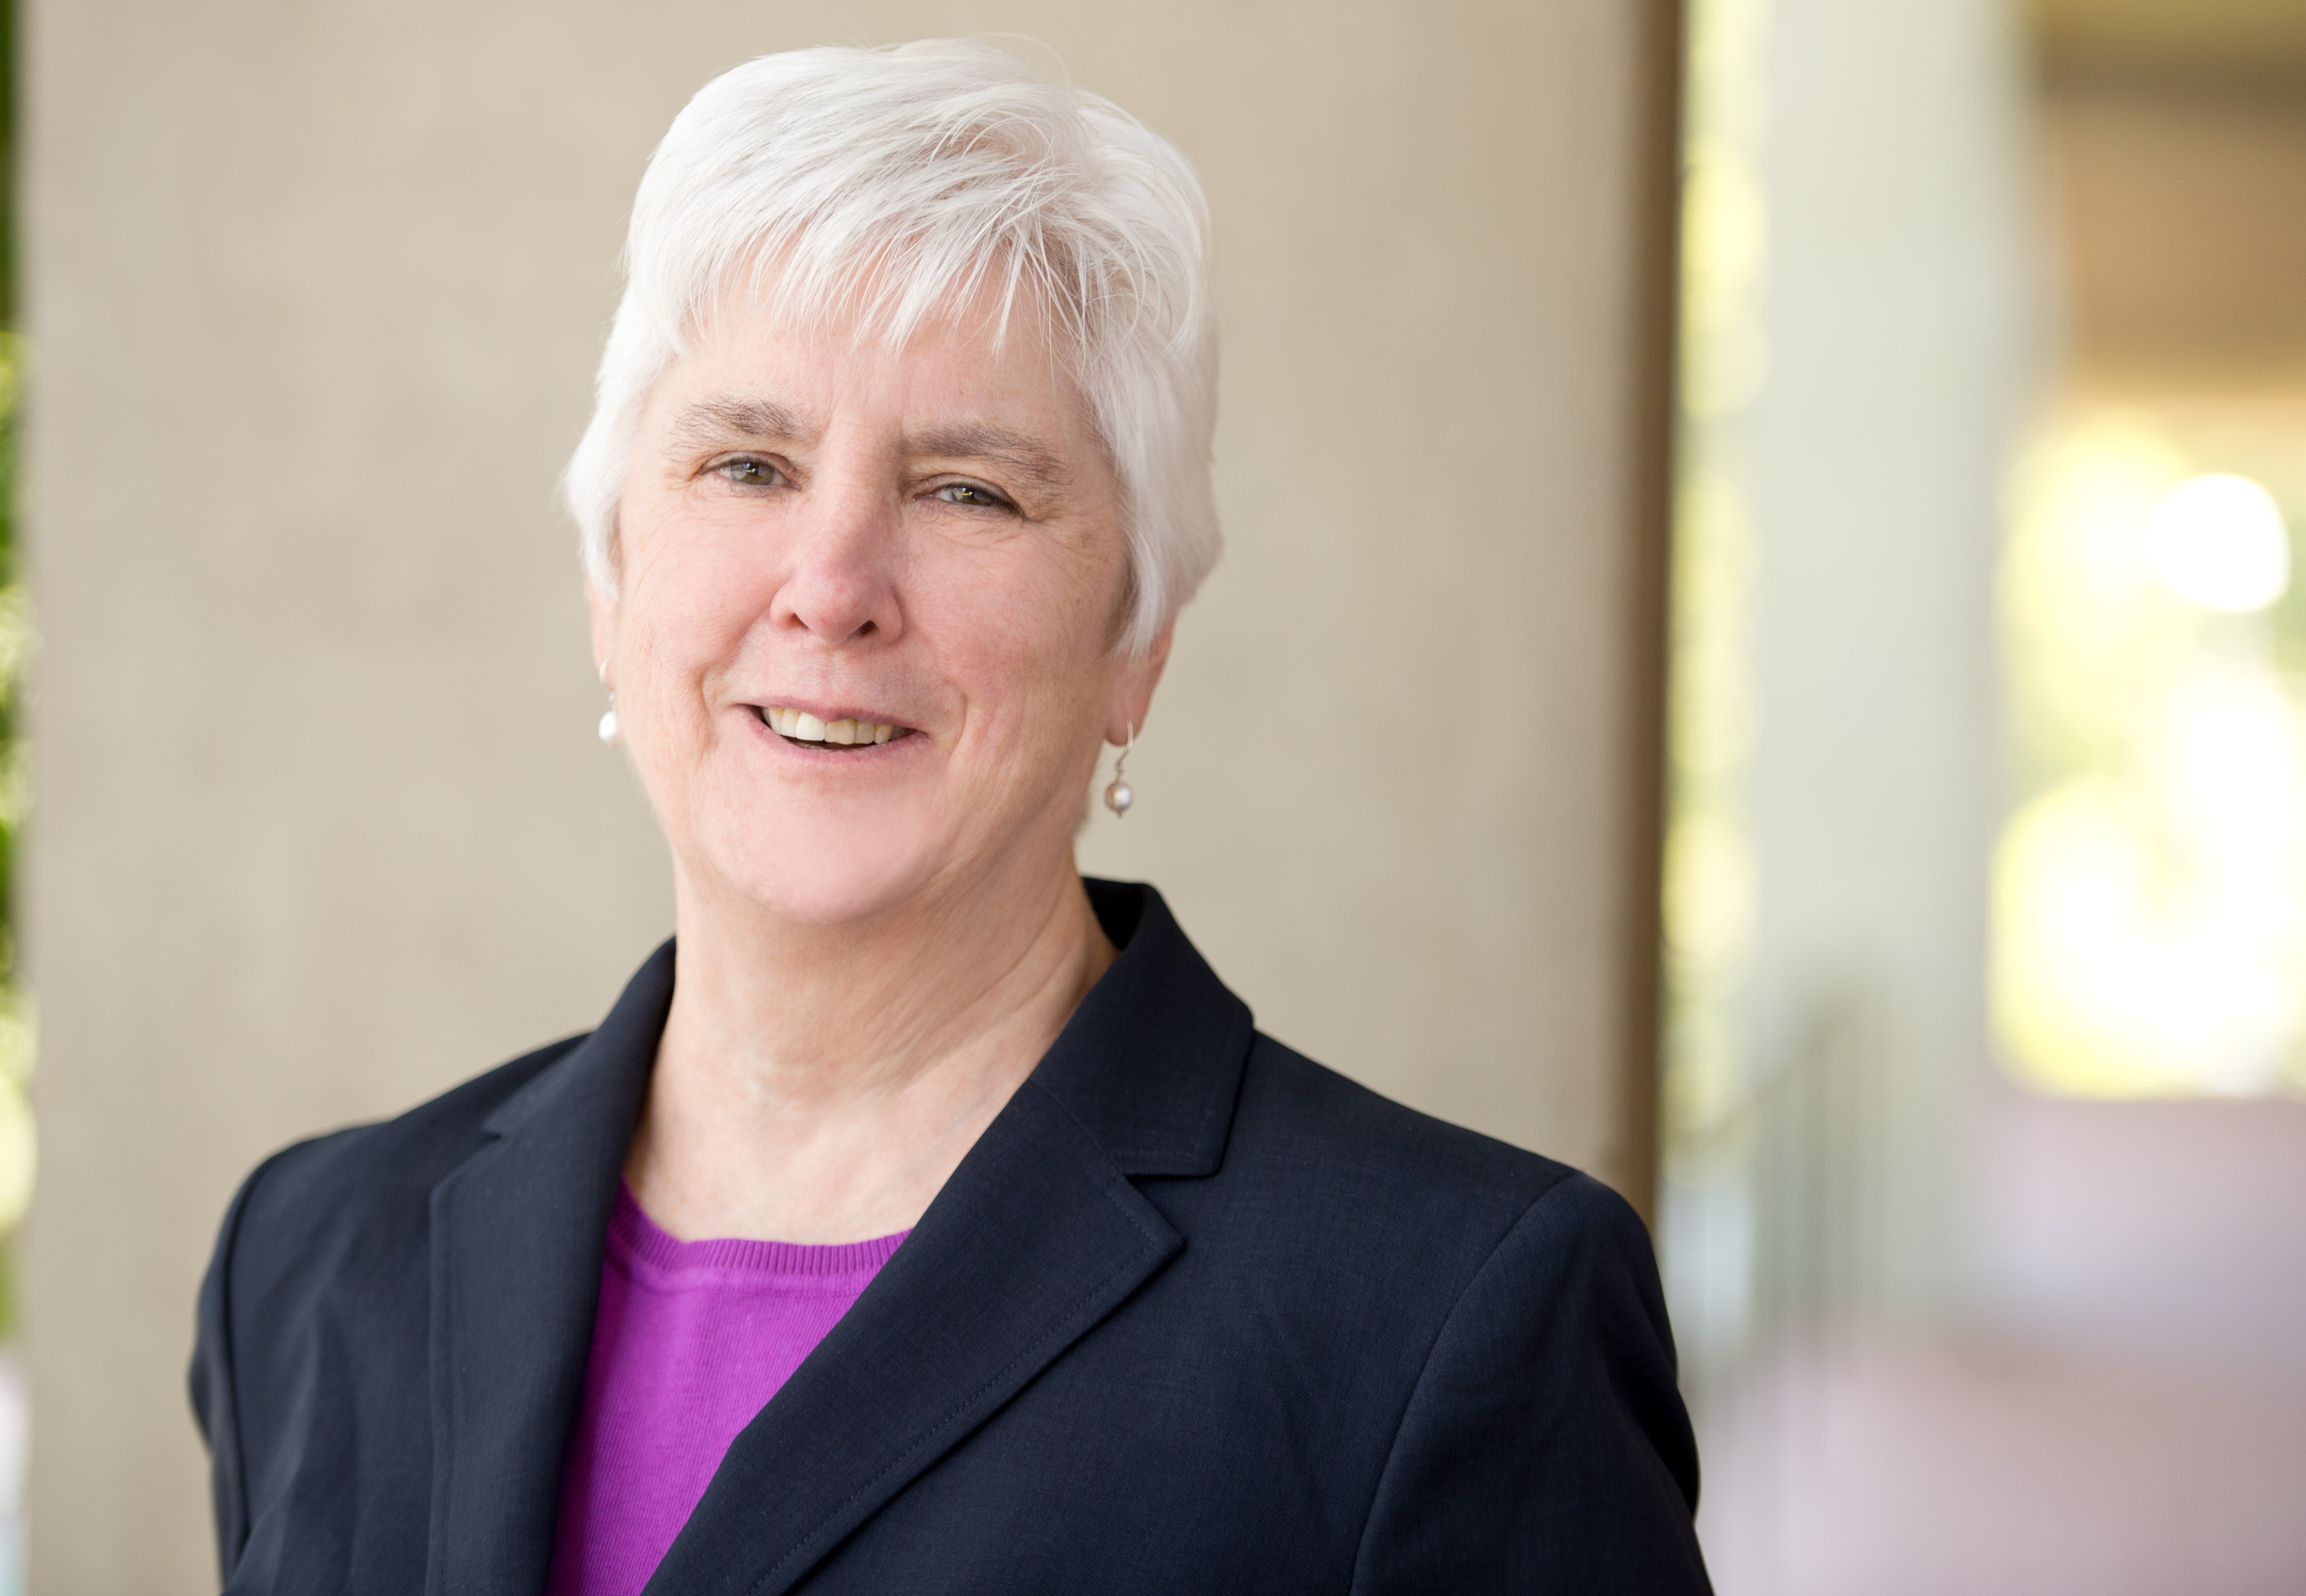 Judith W. Wegner, University of North Carolina School of Law